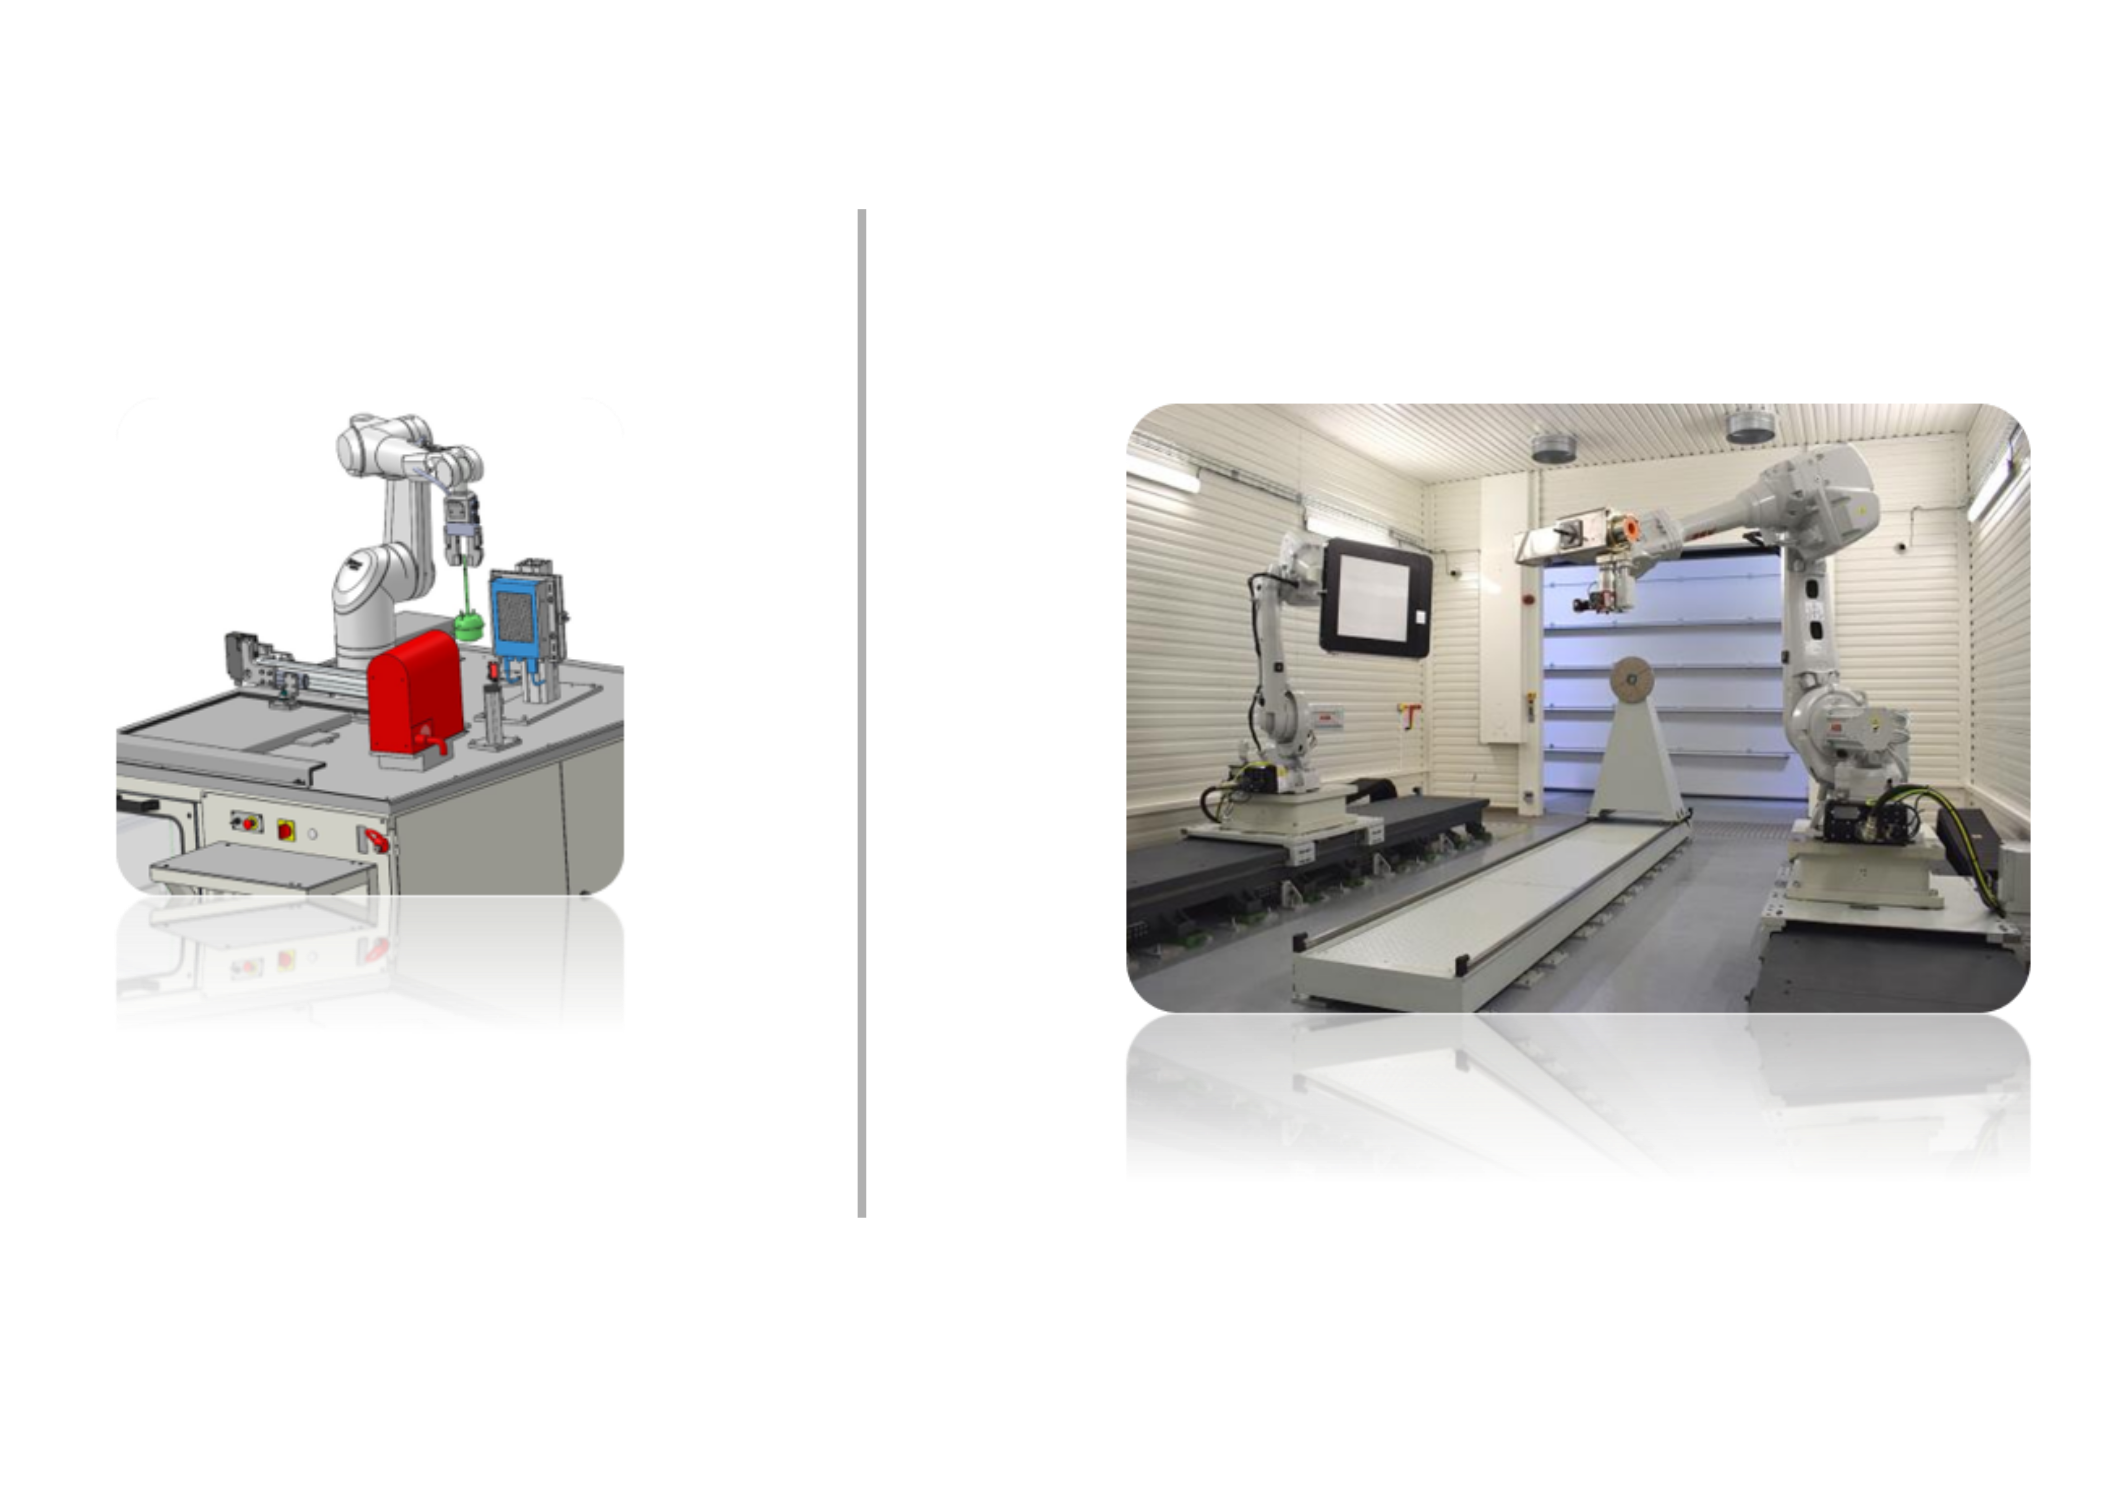 Design of the robot CT